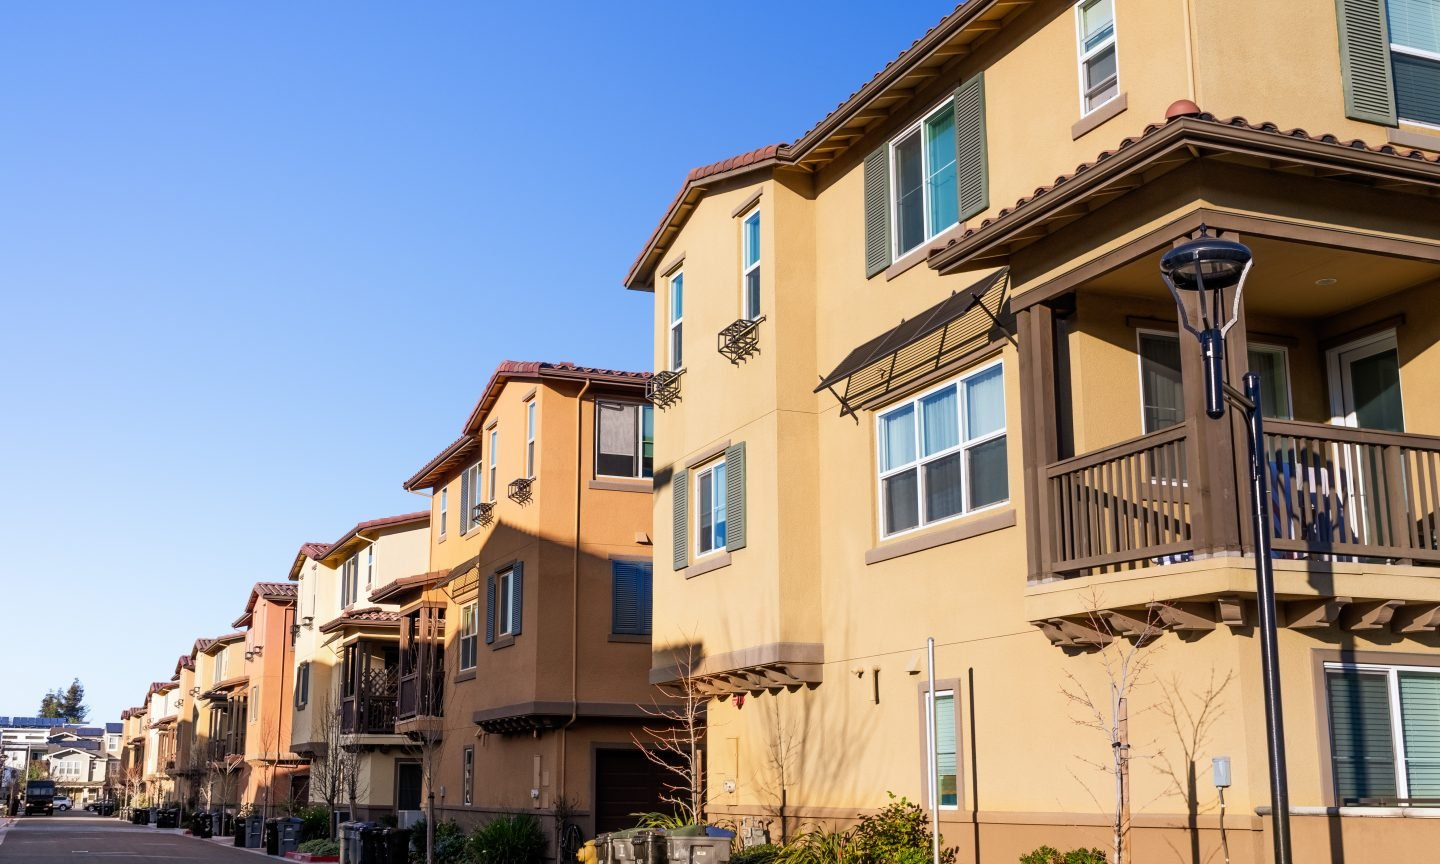 Buying a Single-Family Home vs. Condos, Co-ops, and More - NerdWallet